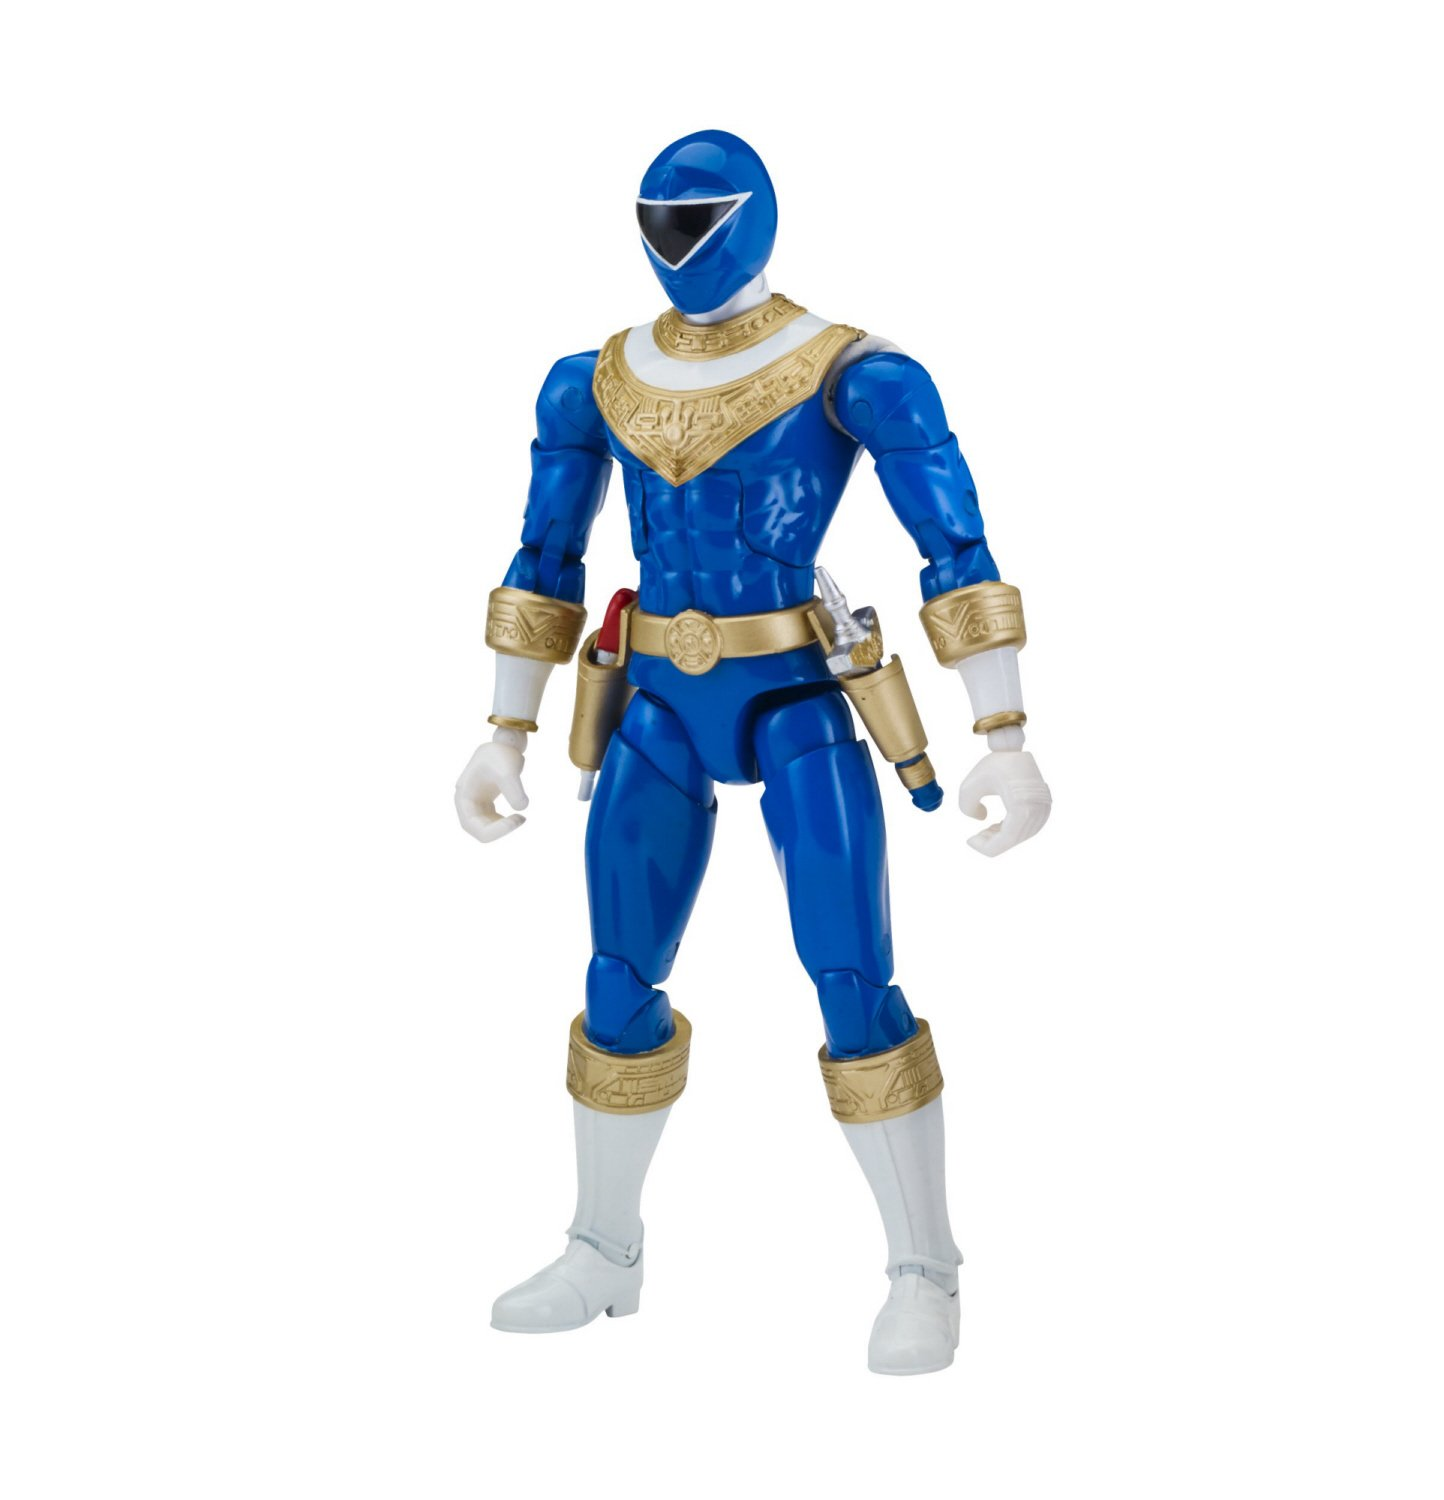 Power Rangers Zeo Action Figure, Blue by Power Rangers (Image #4)